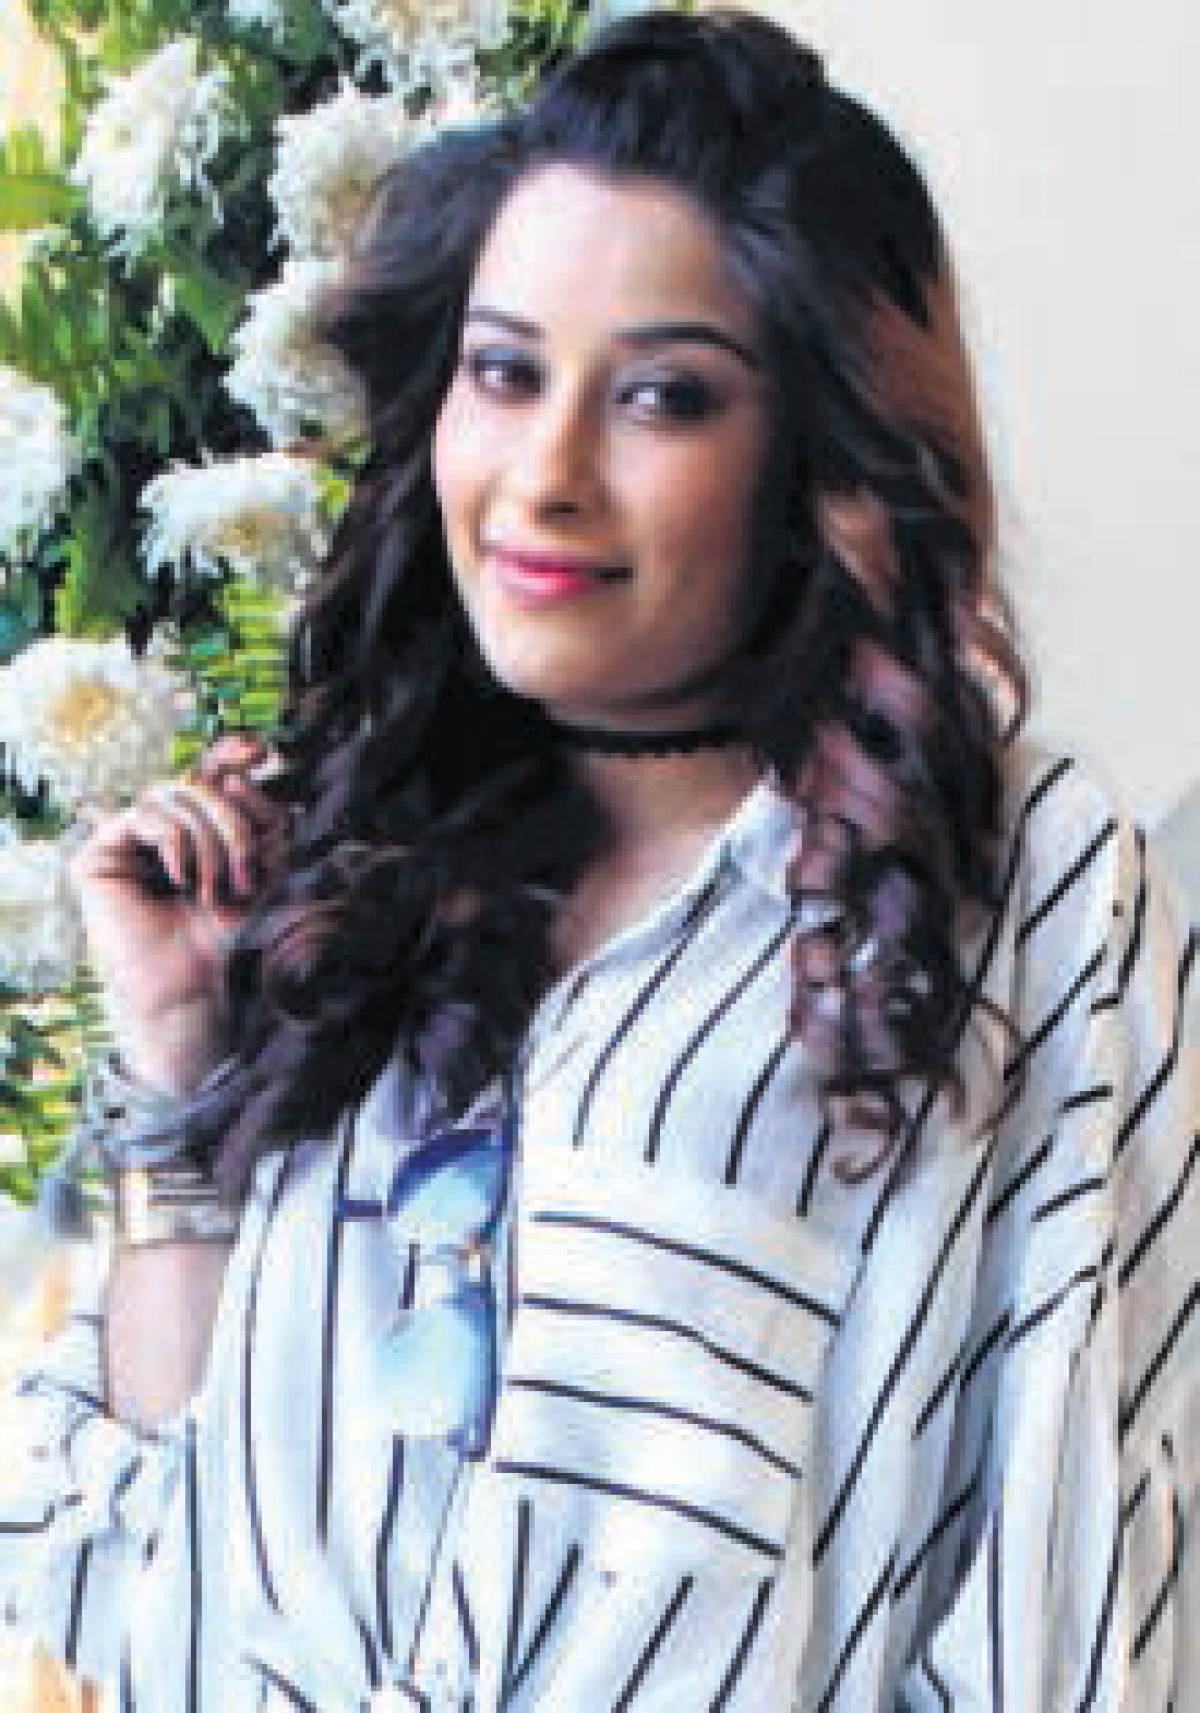 Bhopal: Actor Nyra Banerjee promotes debut show in city